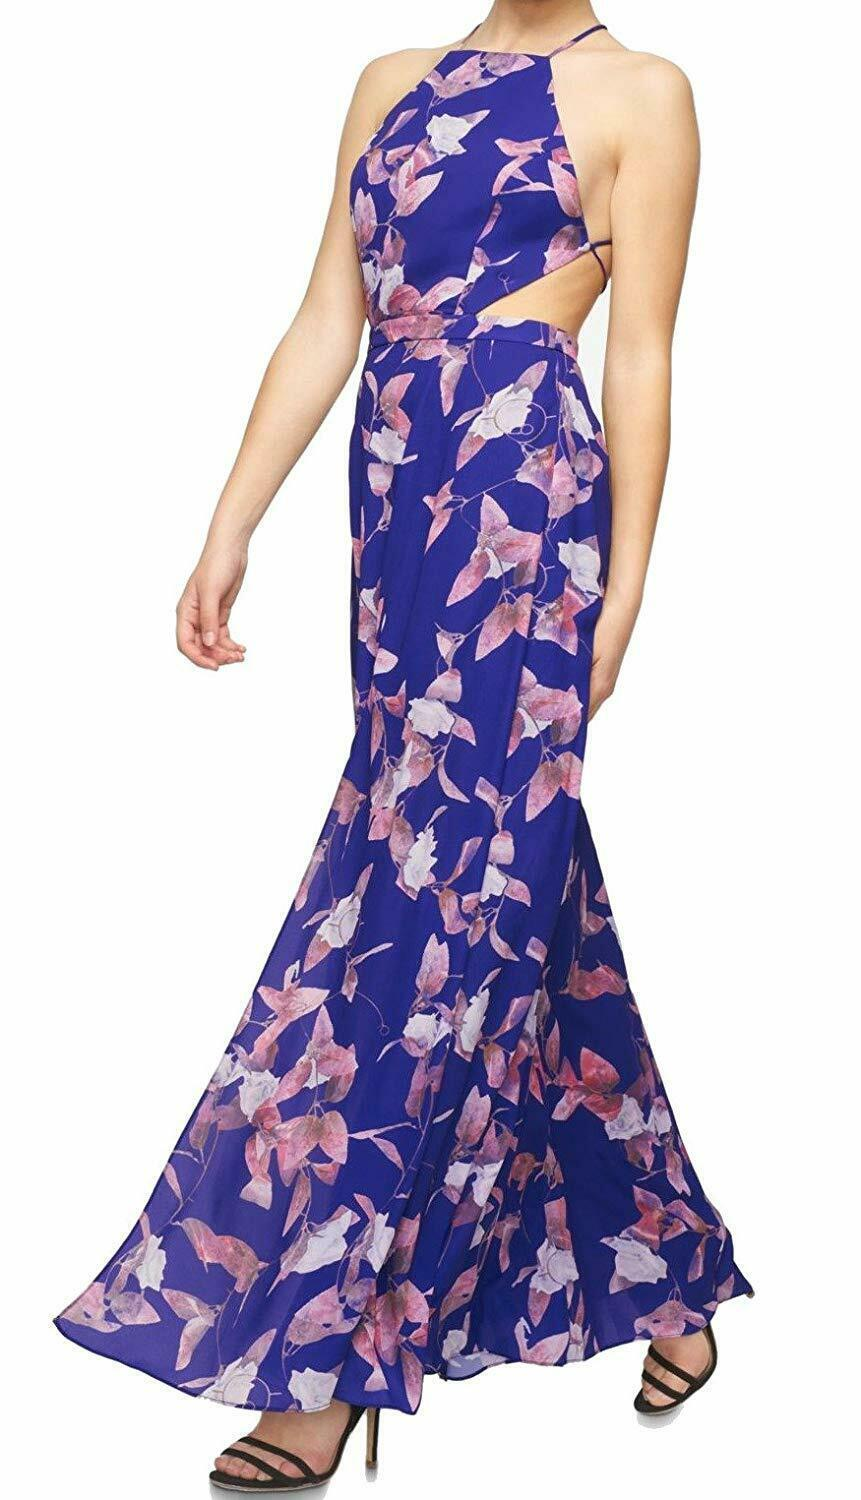 Fame And Partners Women'S Printed Halter Dress With Thigh-High Slit, Midnight Pe